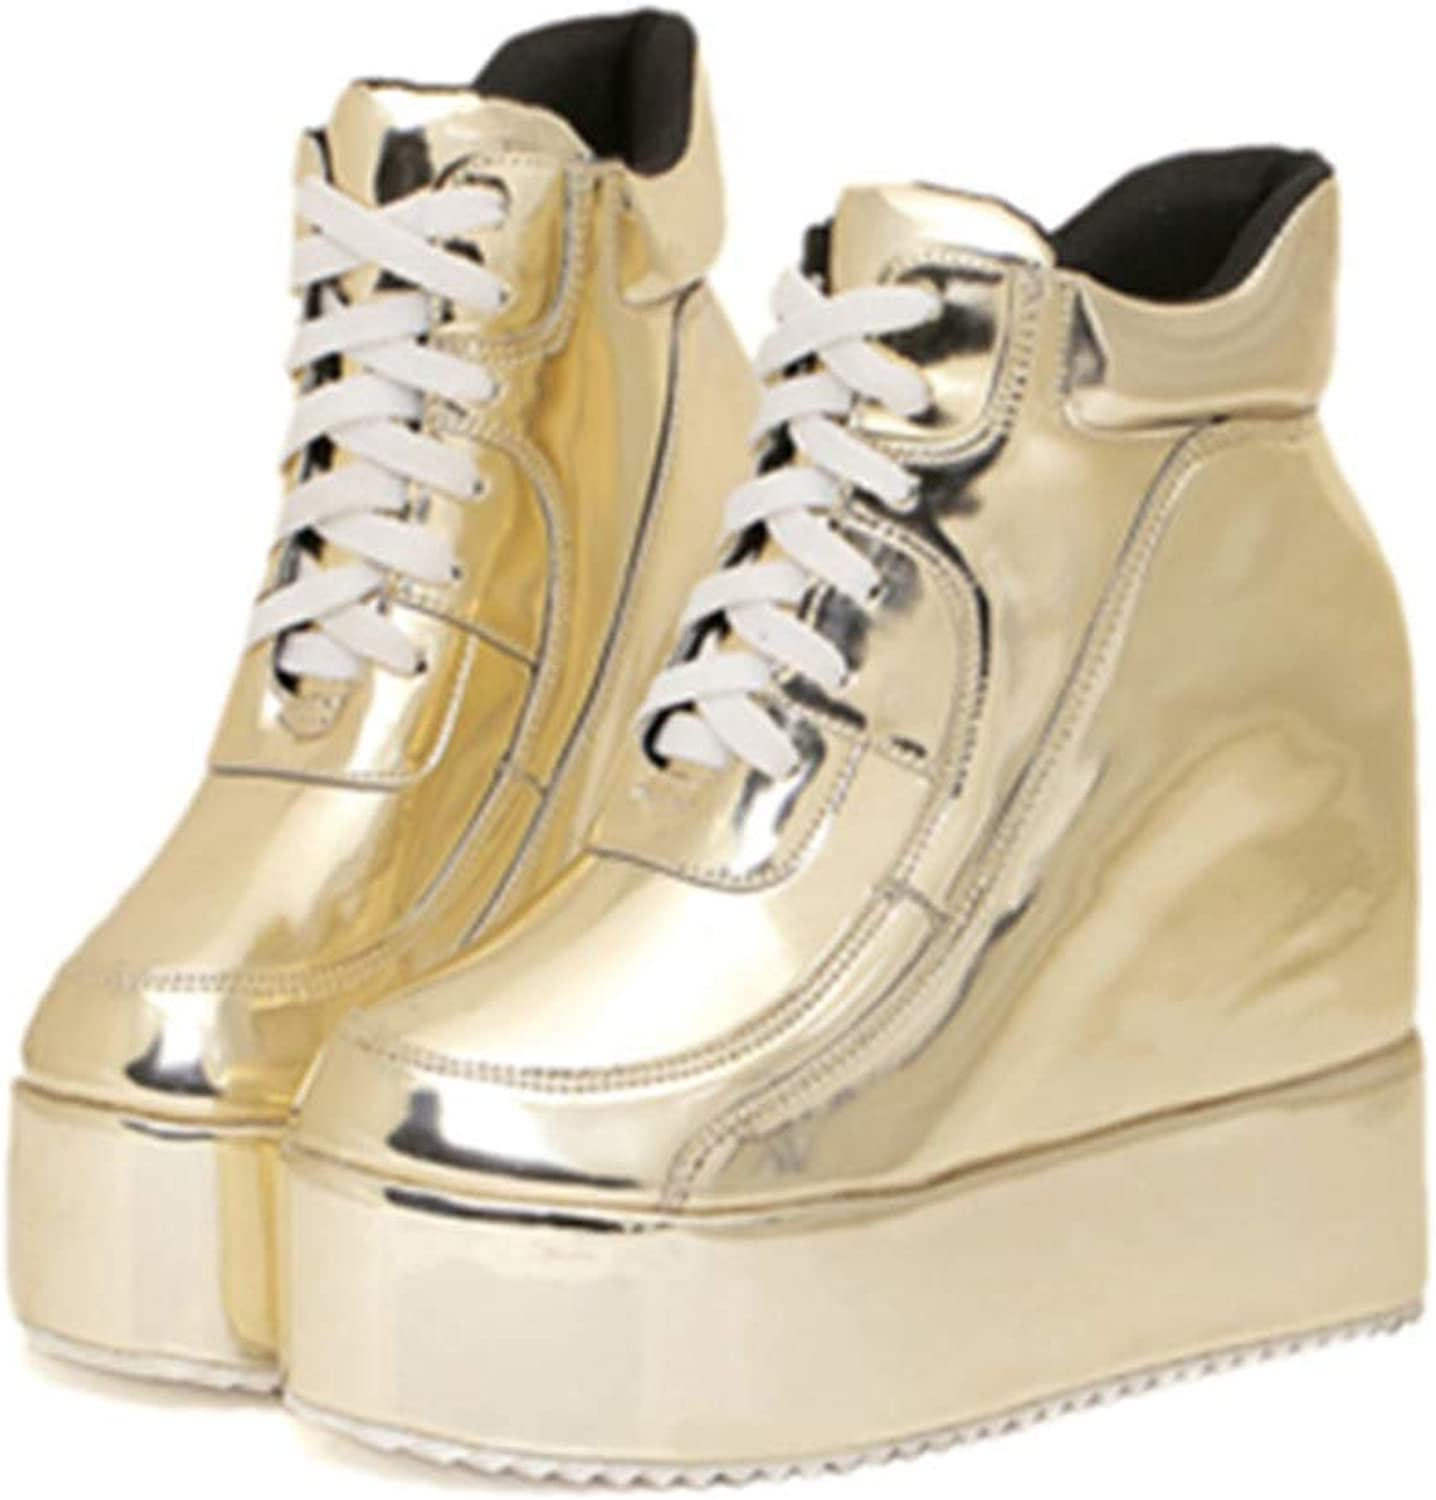 Lelehwhge New Spring Autumn Fashion gold Silver Platform shoes Women Increased Wedge High Top Platform Sneakers gold 6.5 M US